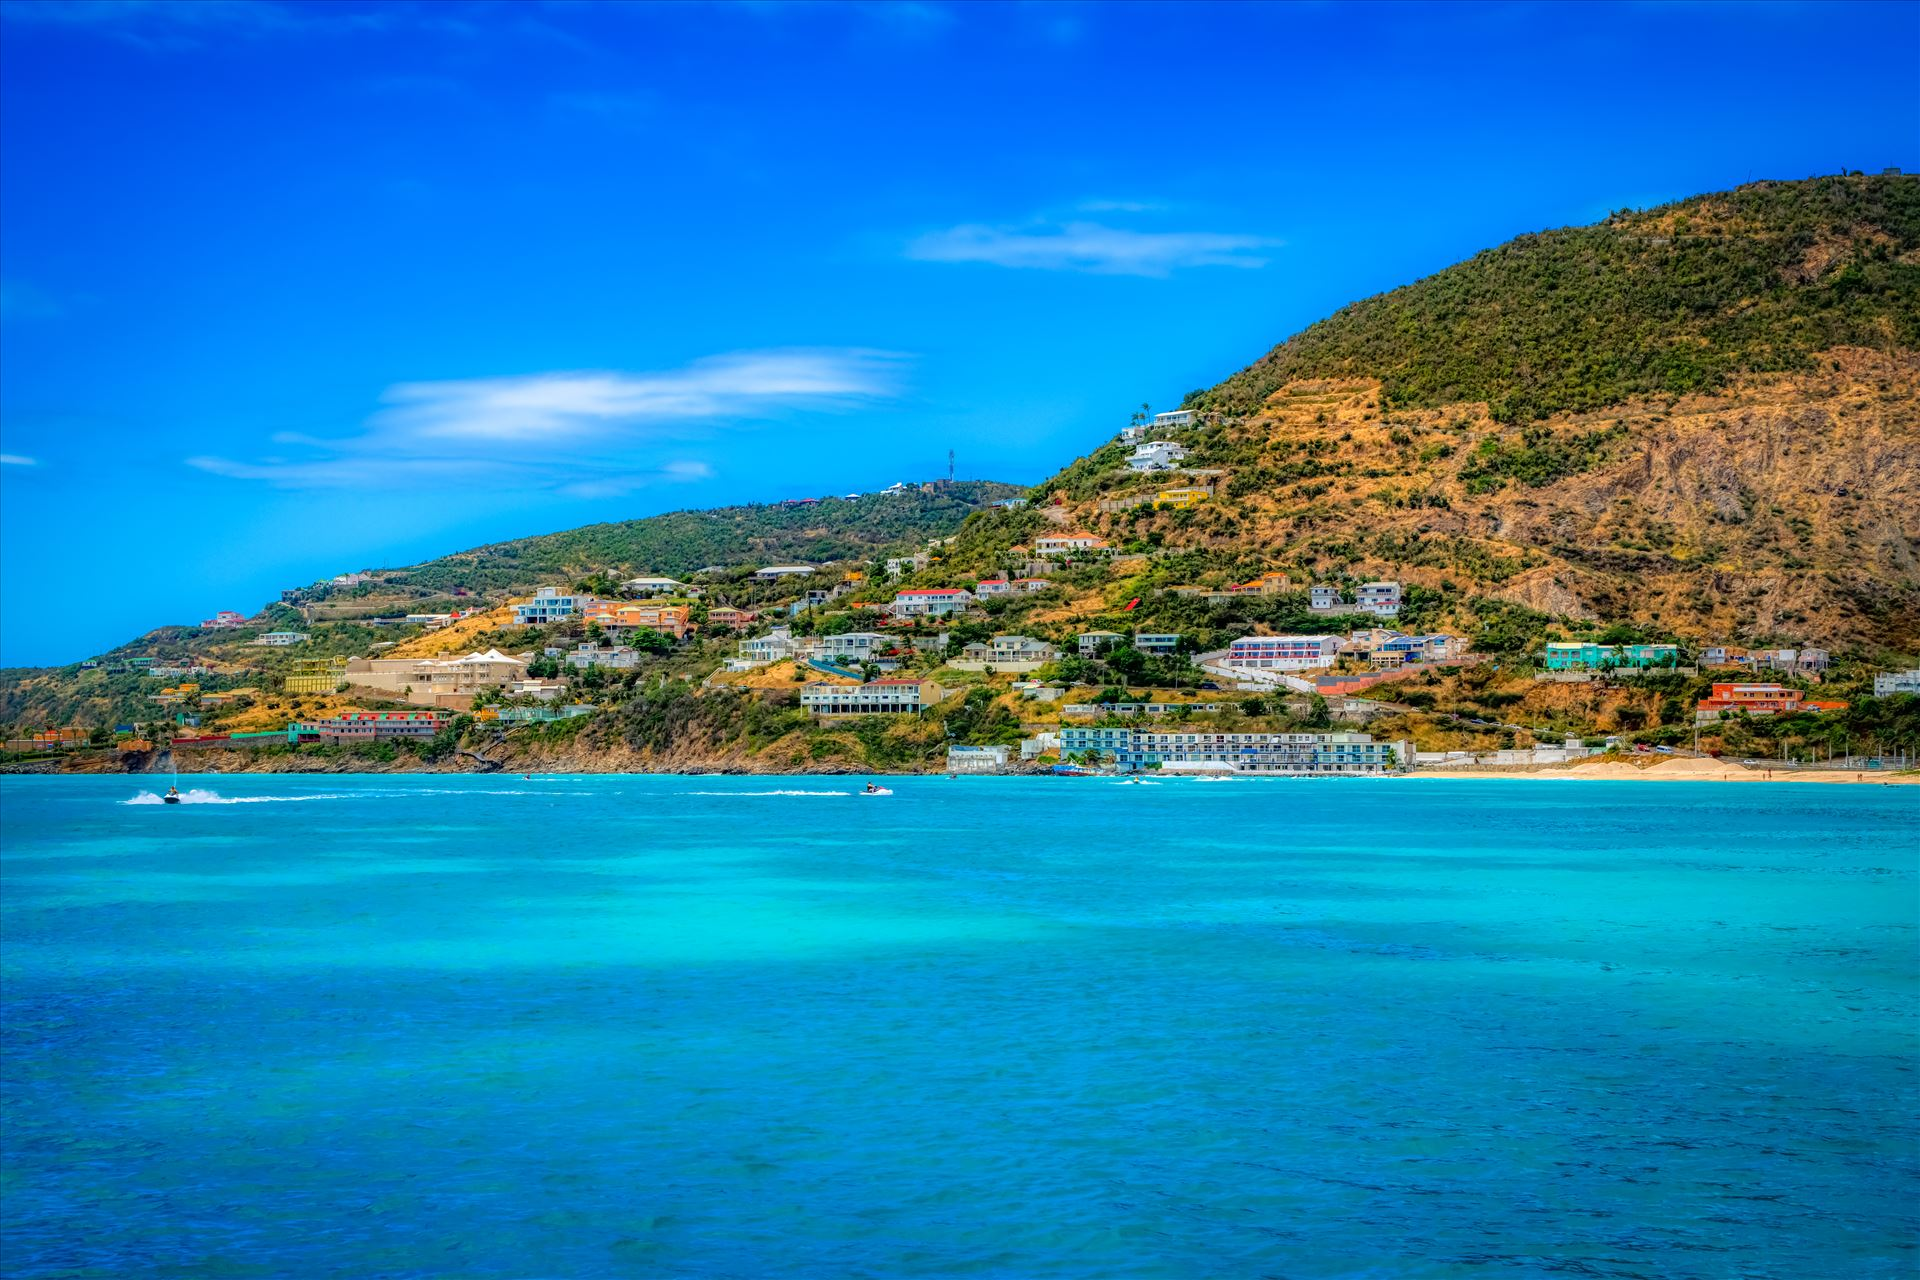 St. Maarten The city of St. Maarten on St. Martin by Terry Kelly Photography